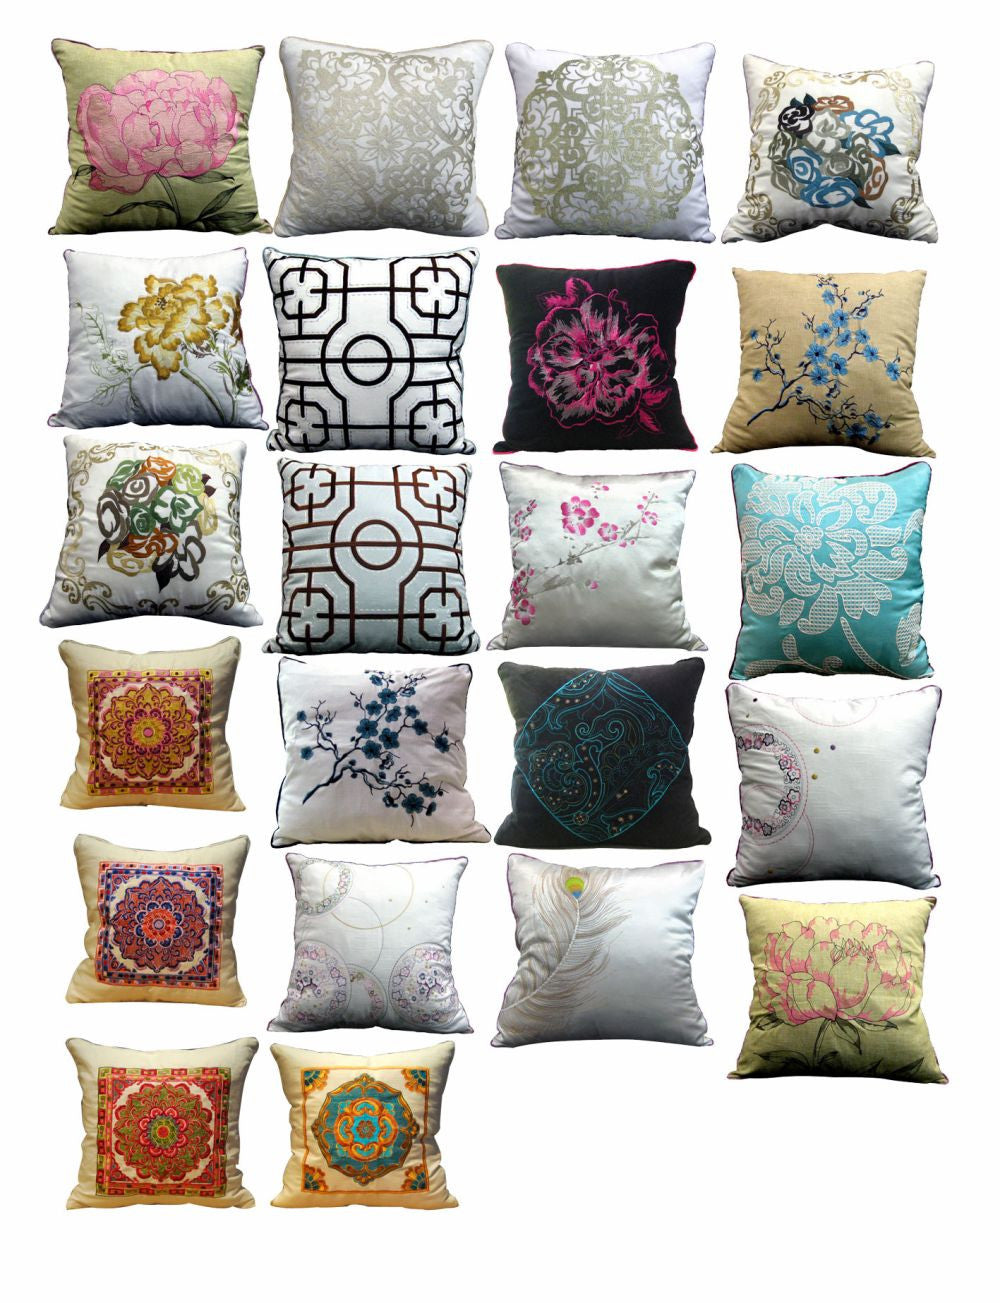 Photoshop PSD Blocks -Pillow Blocks